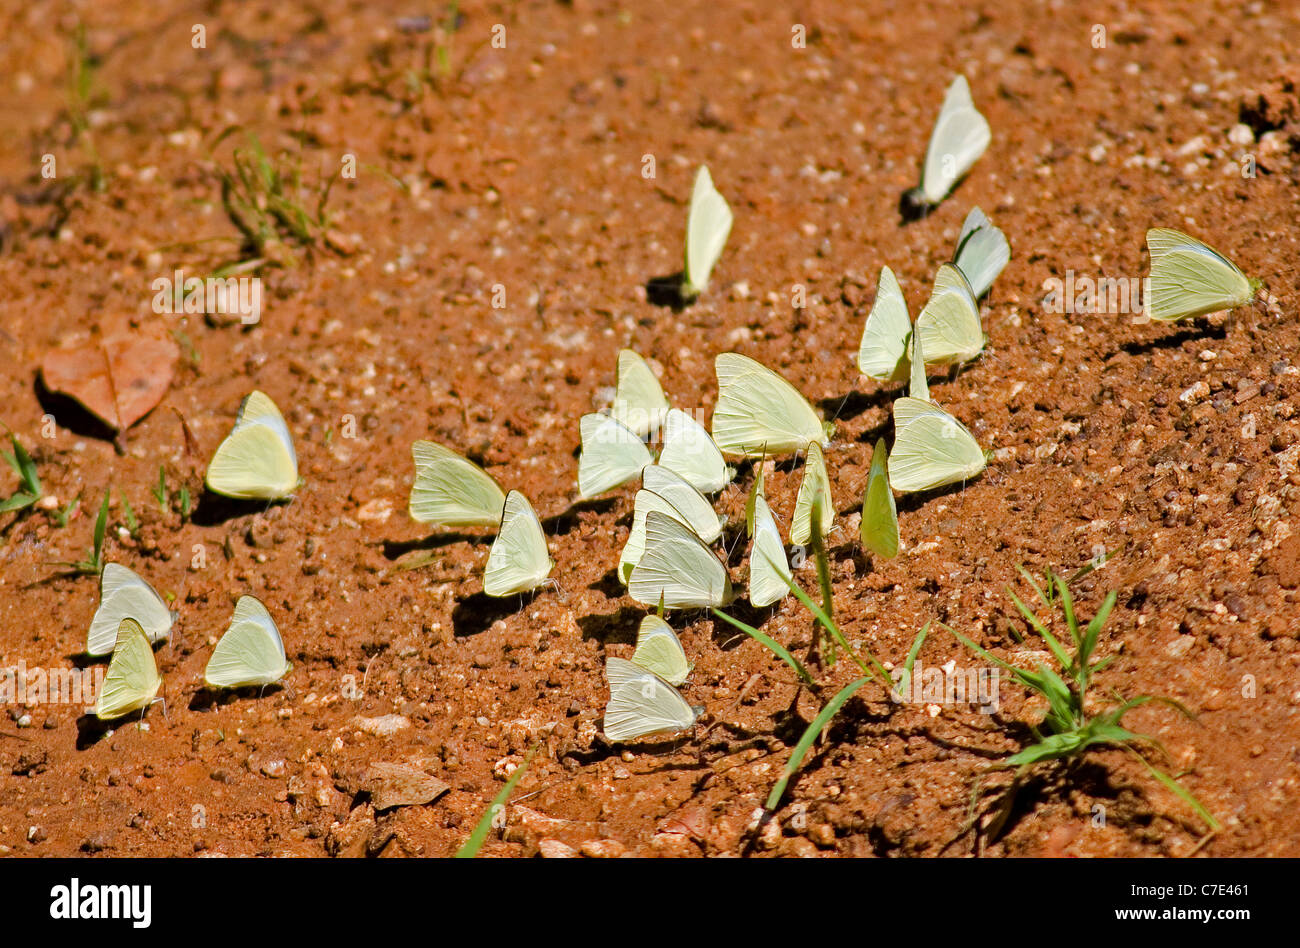 Butterflies taking nutrients from bare earth surface Sri Lanka - Stock Image